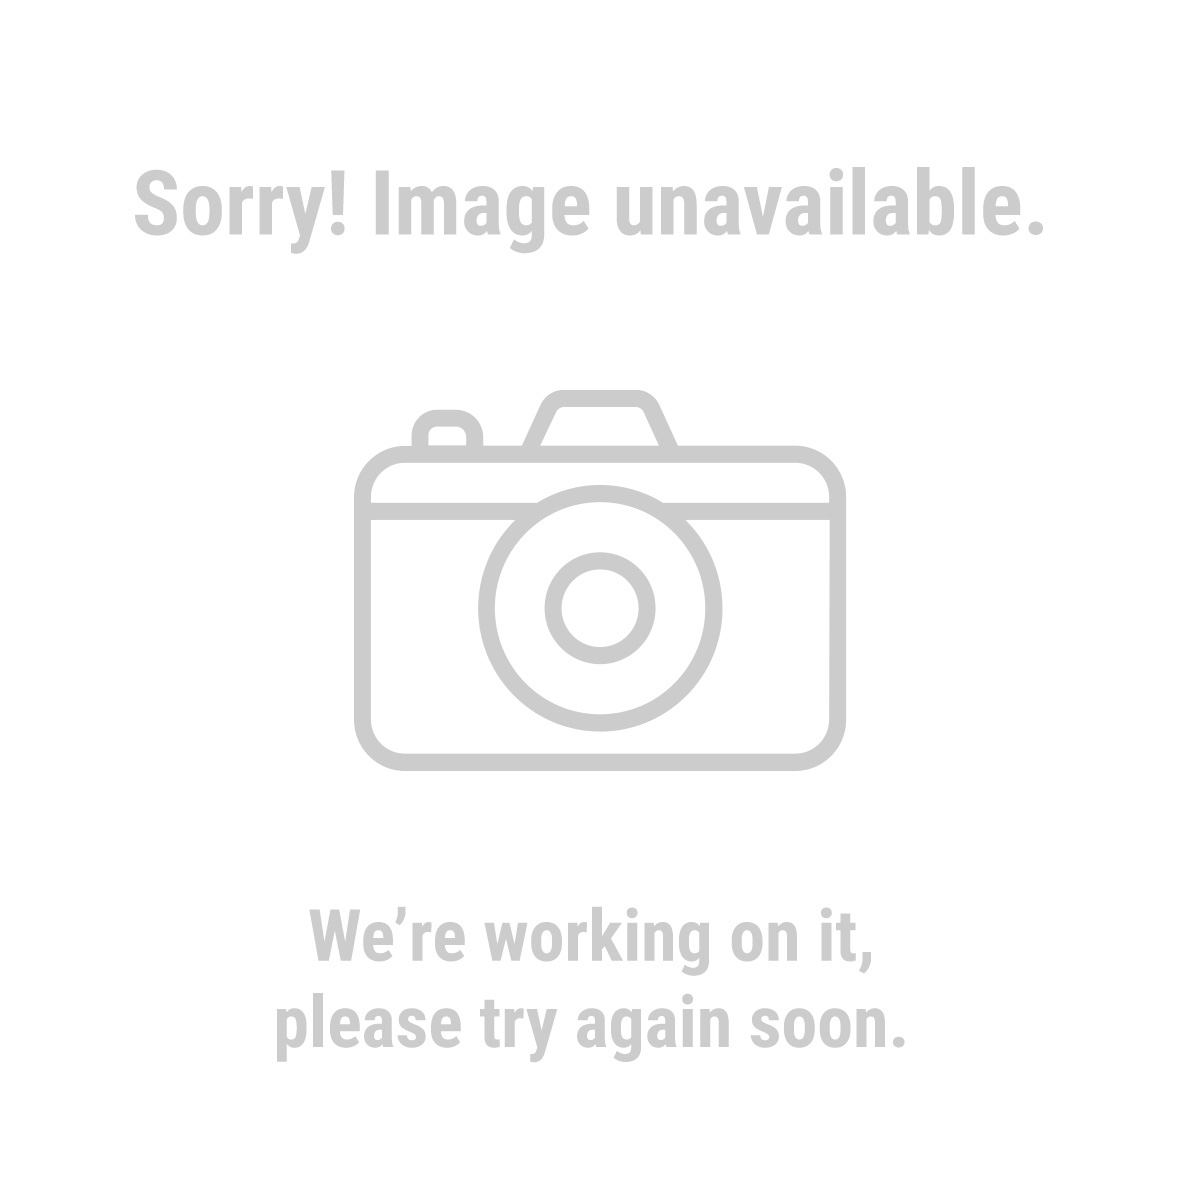 Warrior 61596 7-1/4 in., 36 Tooth C5 Metal Cutting Circular Saw Blade